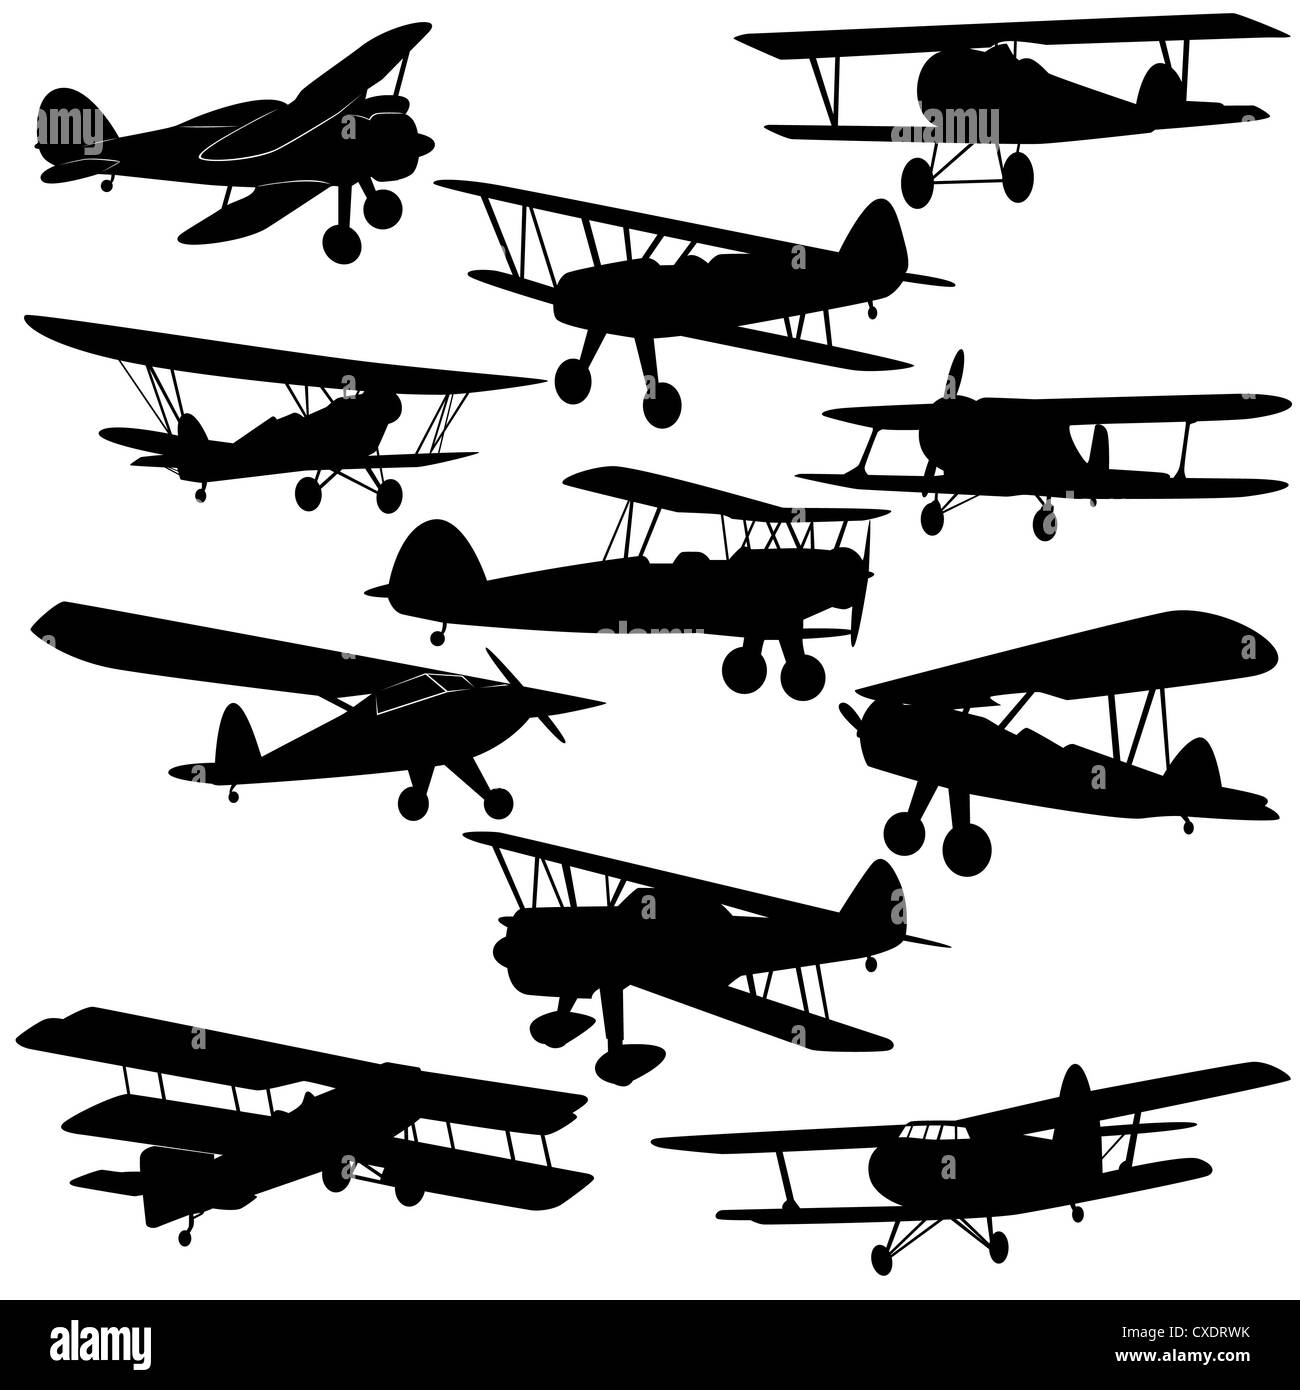 The contours of old aircraft and airplanes. Illustration on white background. - Stock Image